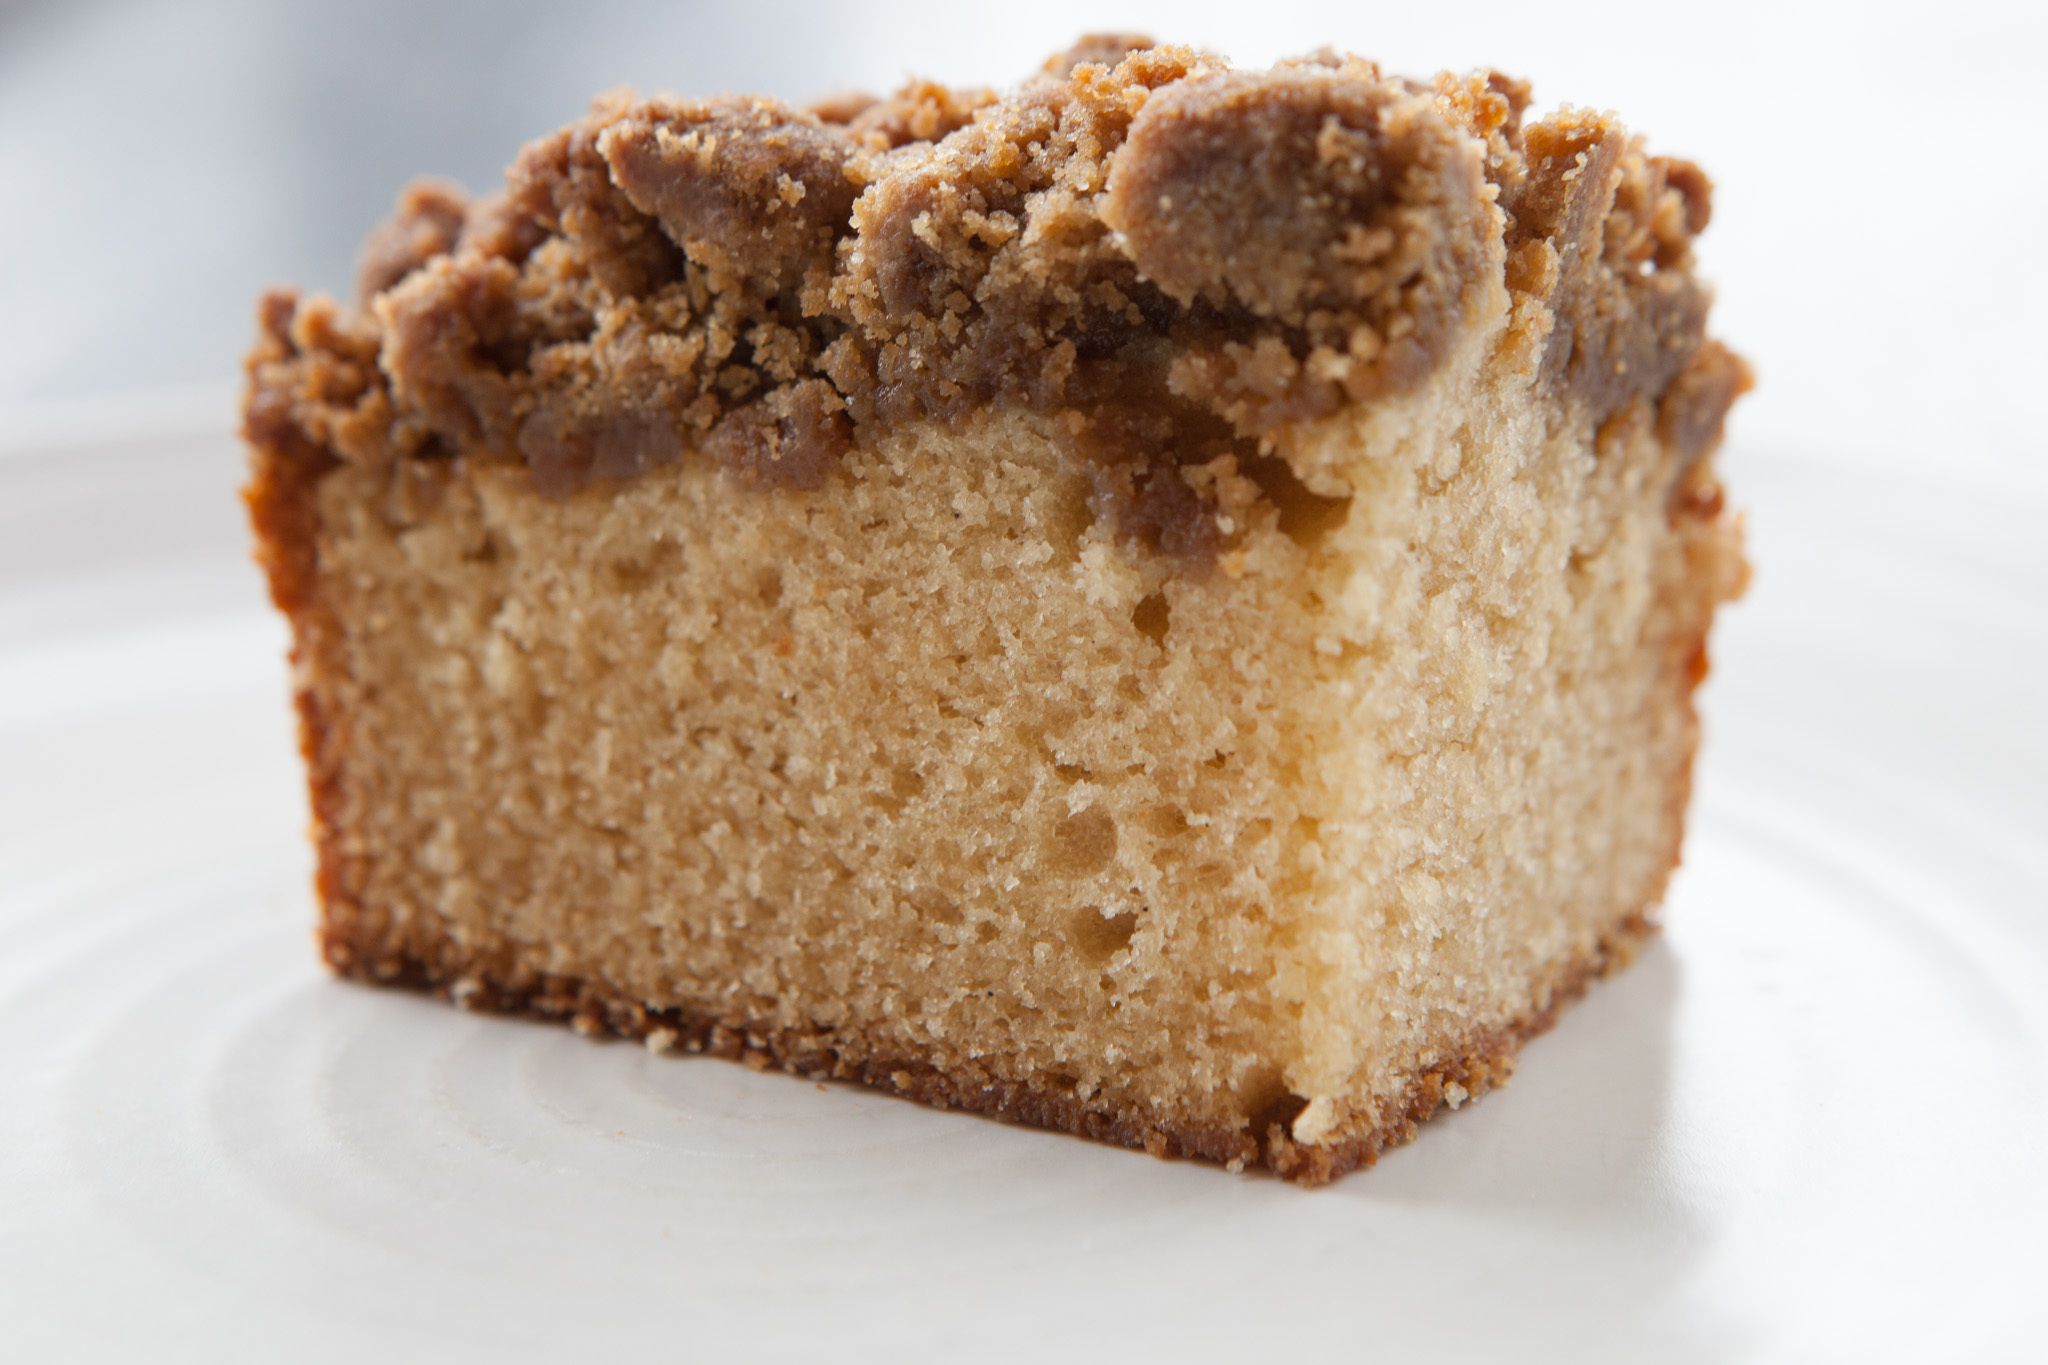 Vanilla malt coffee cake at Lula Cafe